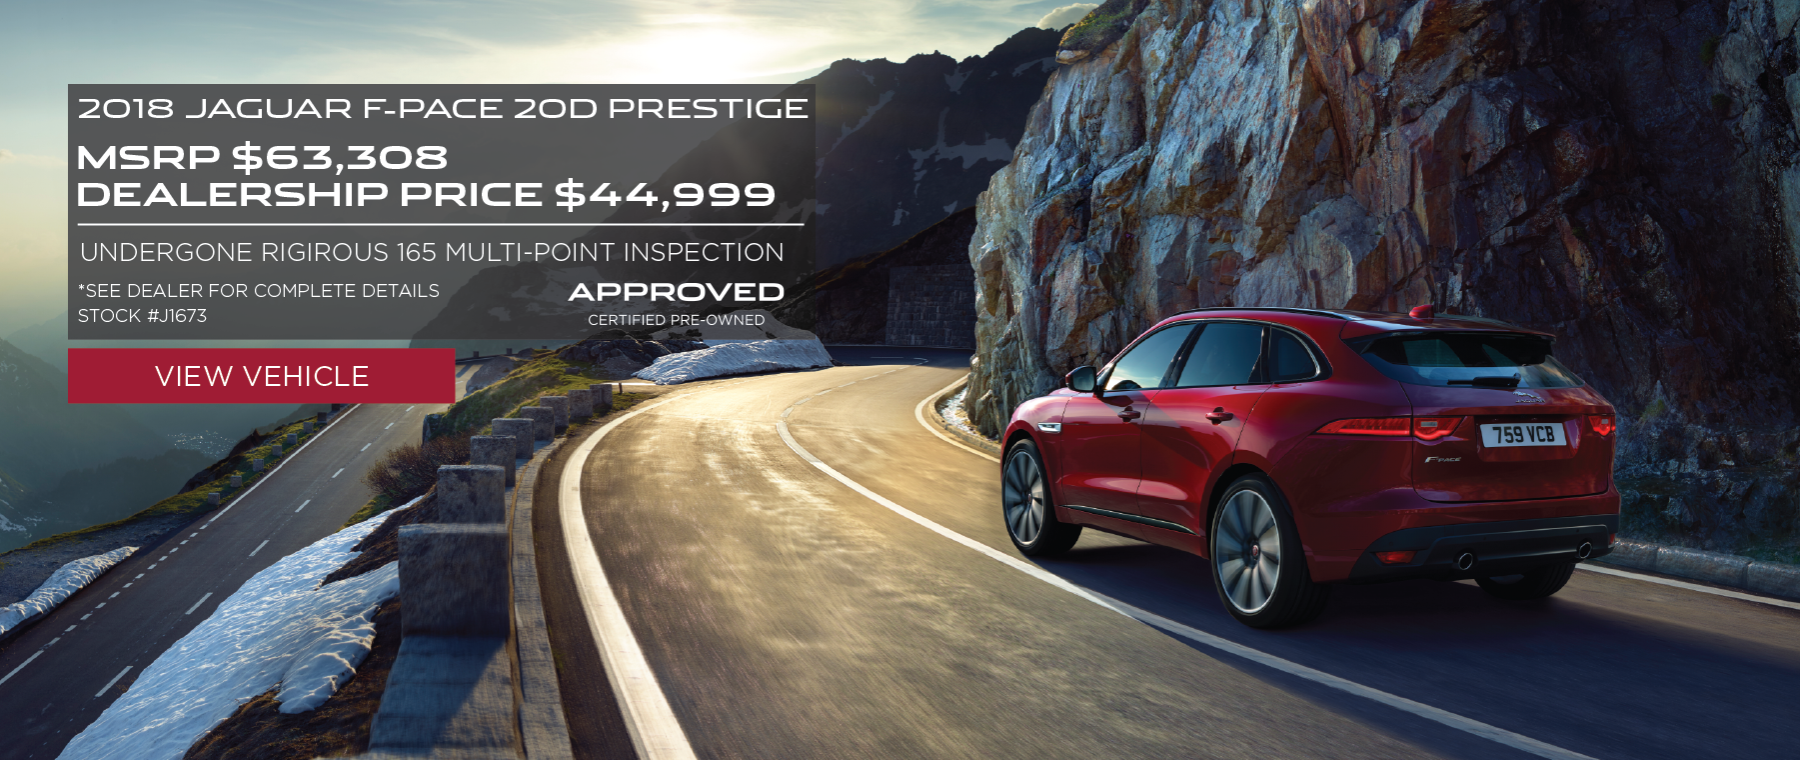 Red 2018 Jaguar F-PACE 20d Prestige on road near mountain. MSRP $ 63,308 Dealership Price $ 44,999 Stock # J1673. *See dealer for complete details. Offer expires 2/29/2020.